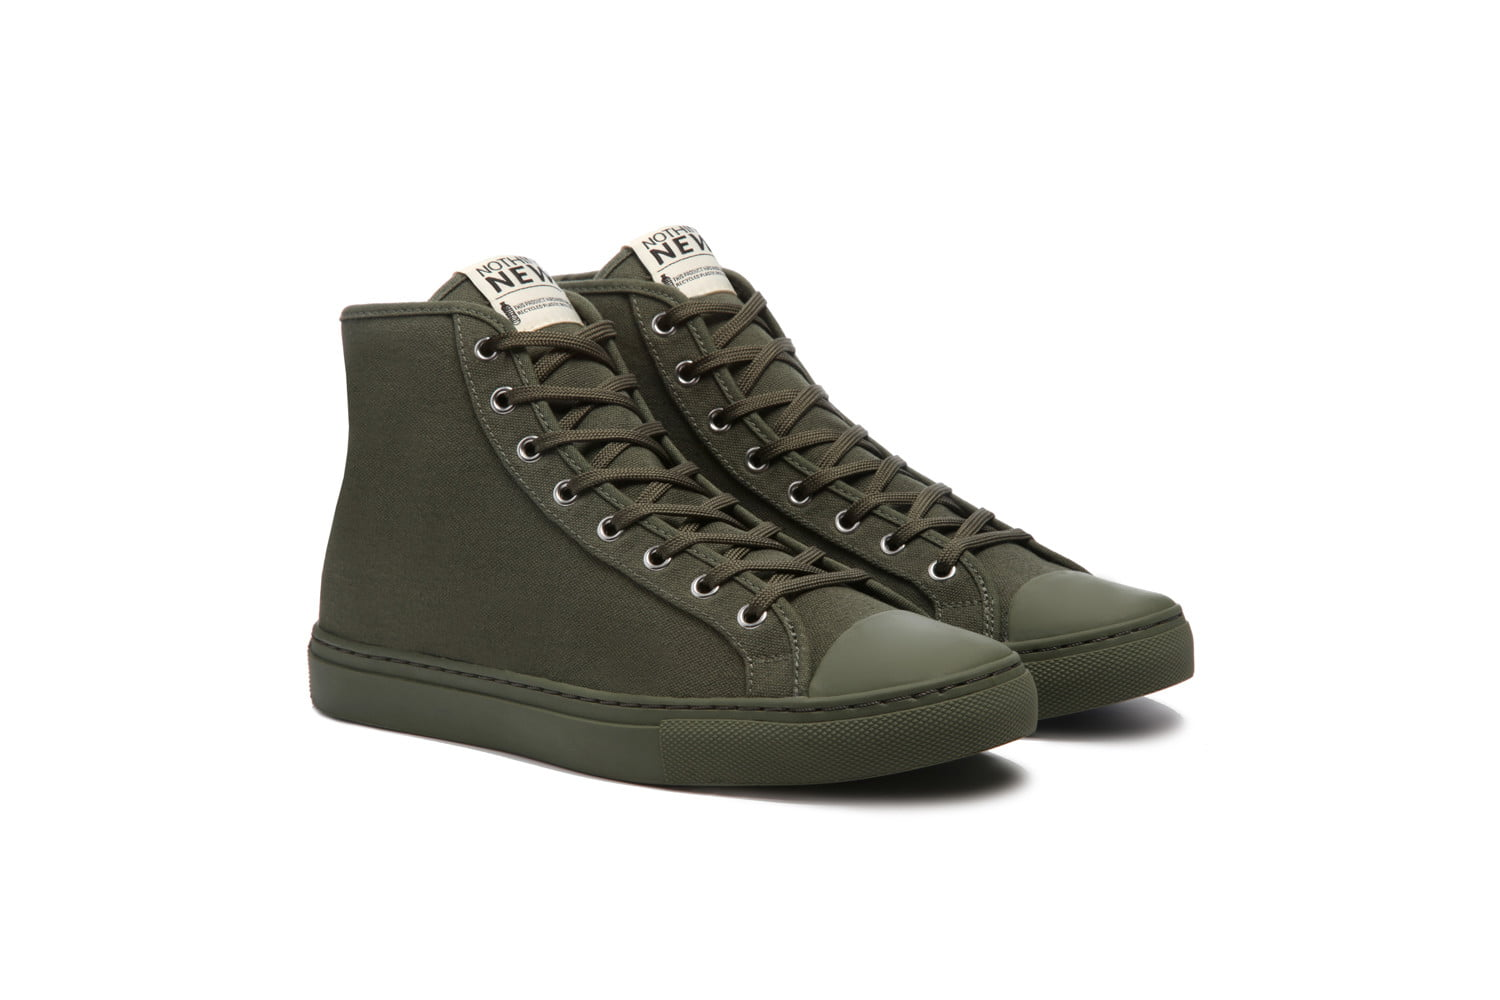 nothing new sustainable sneakers shoes forestgreen high top